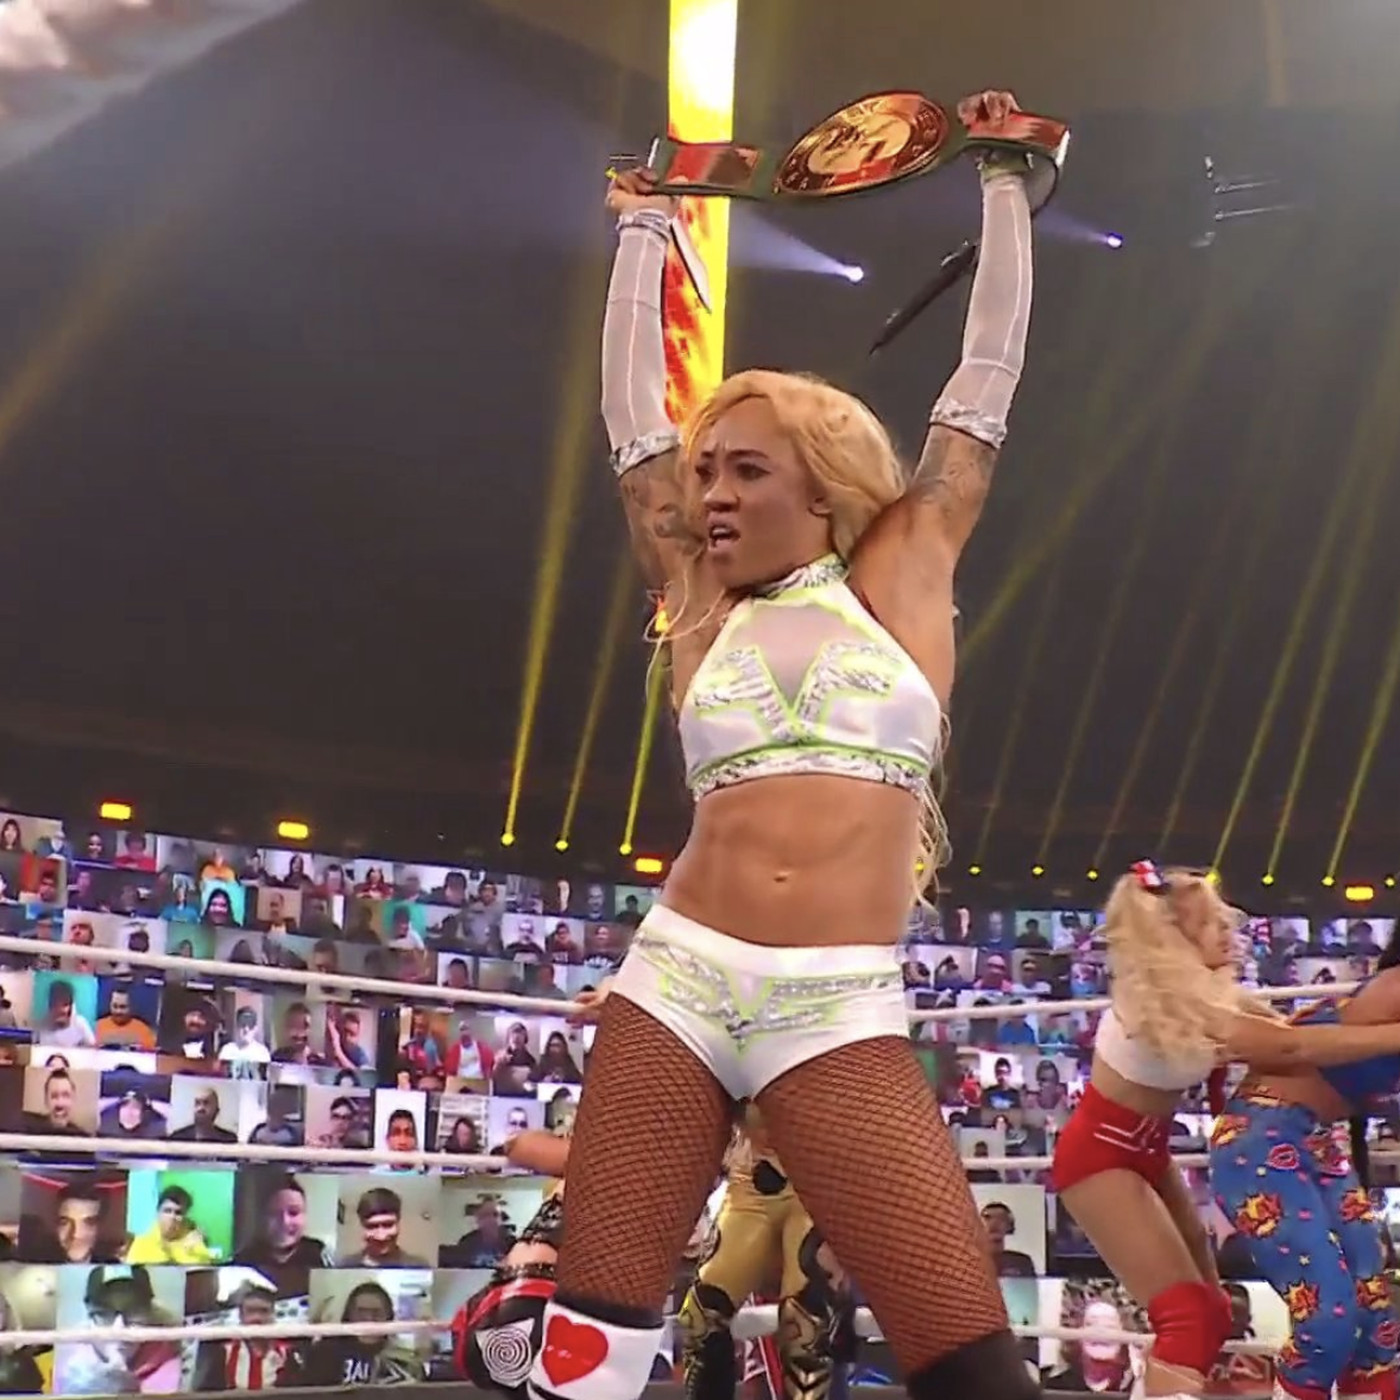 Alicia Fox returned, entered the Royal Rumble, won the 24/7 title, then lost it all - Cageside Seats